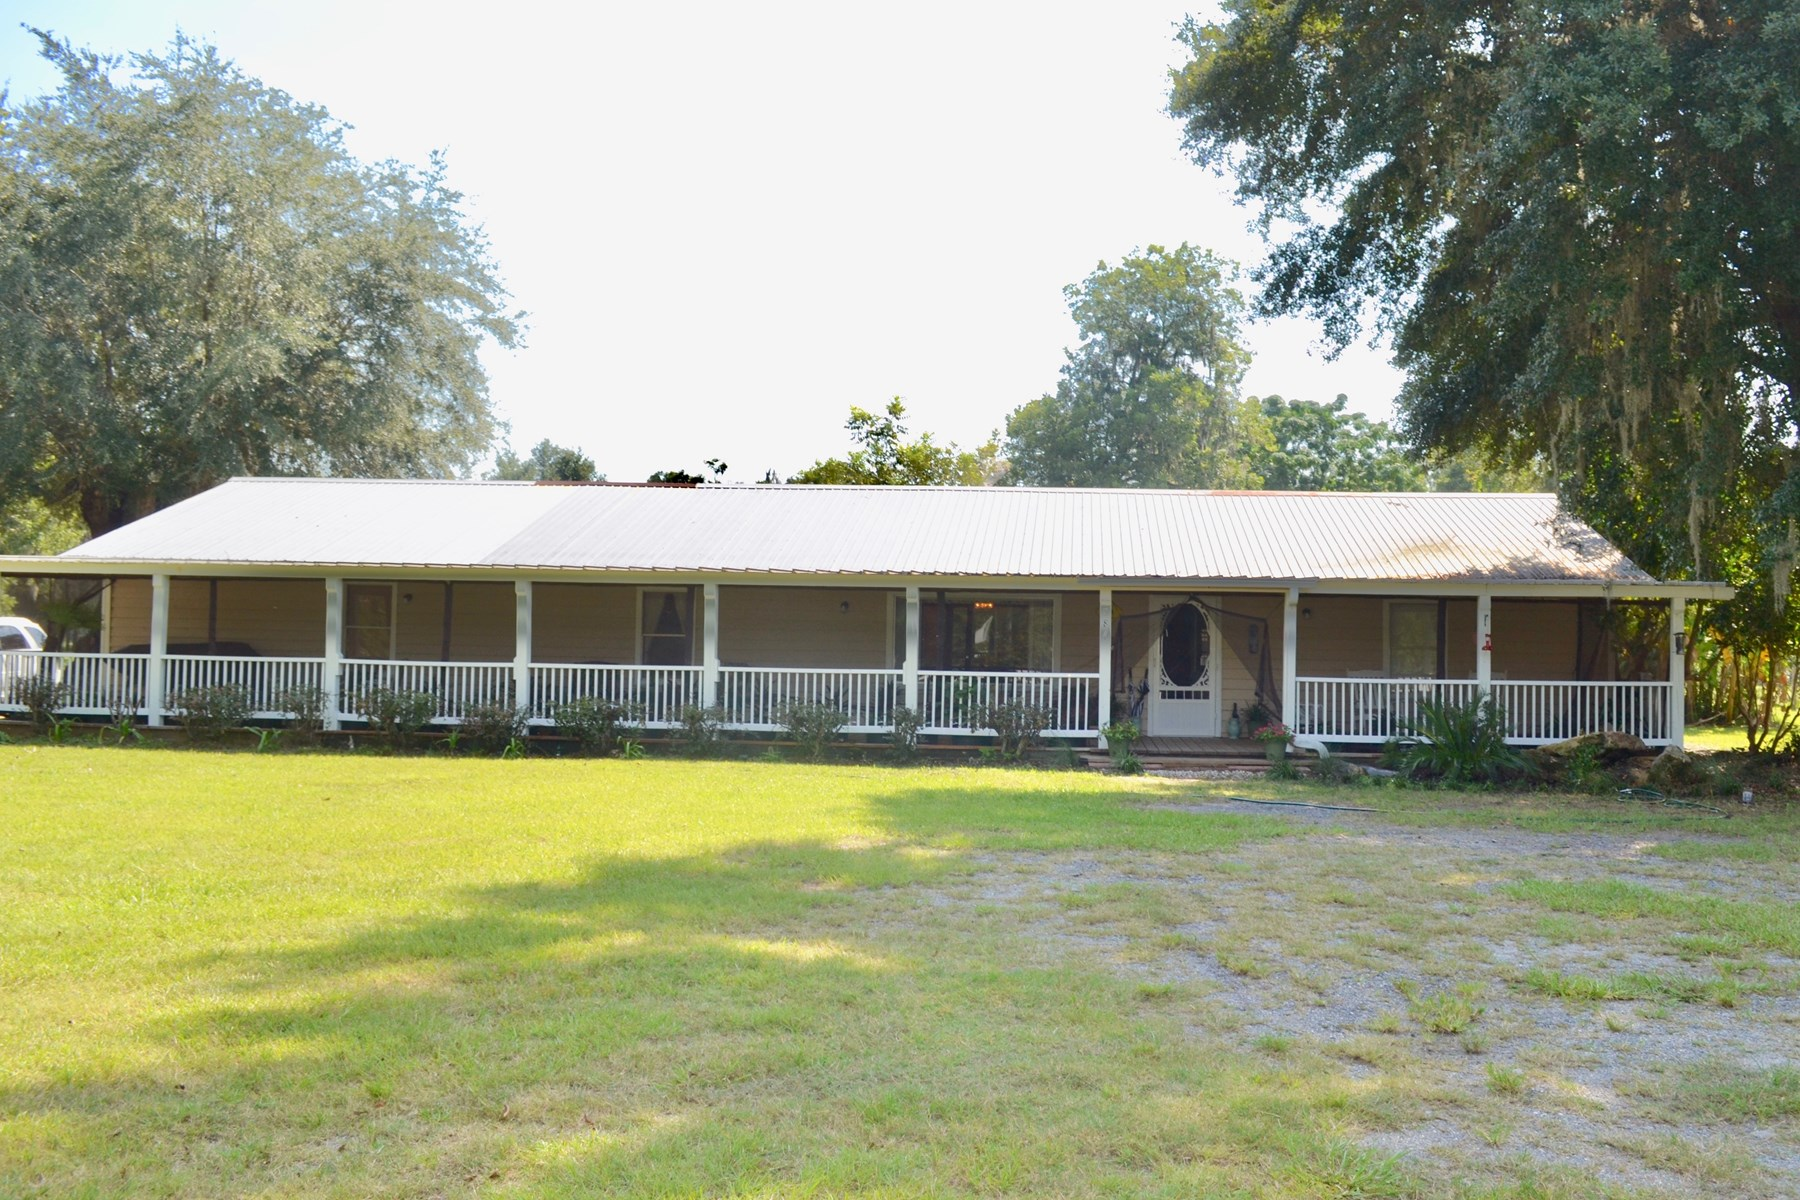 BEAUTIFUL 4BR/3BA RANCH STYLE HOME IN LAKE CITY, FL